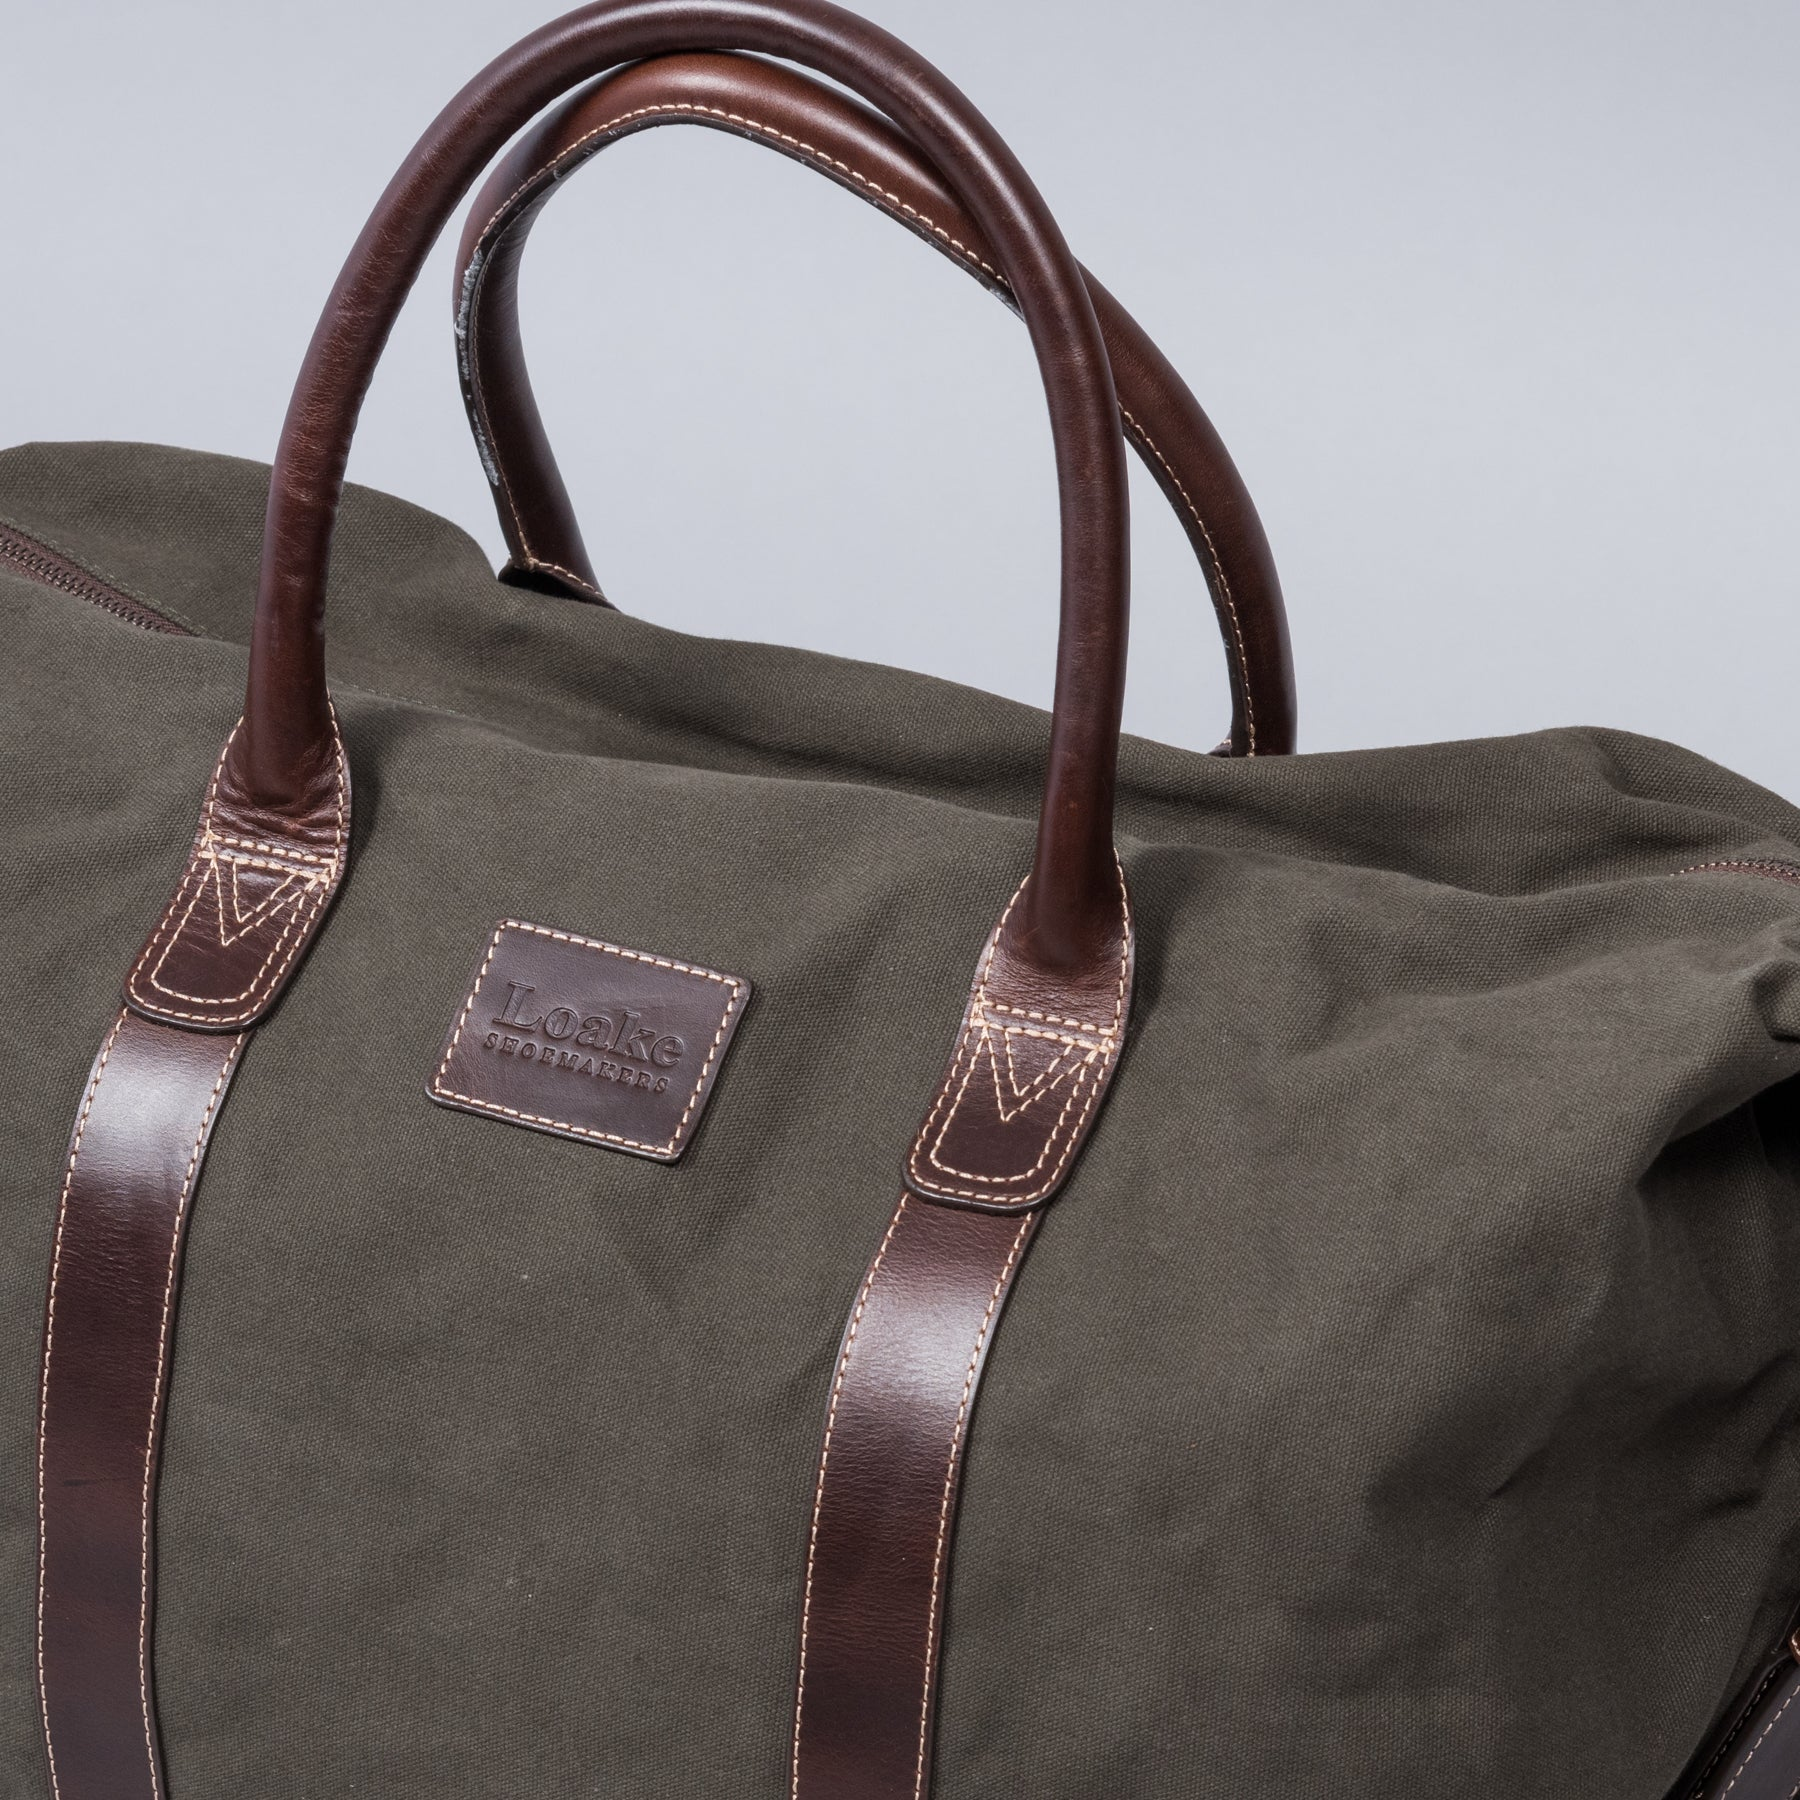 Balmoral Weekend Bag Green Canvas